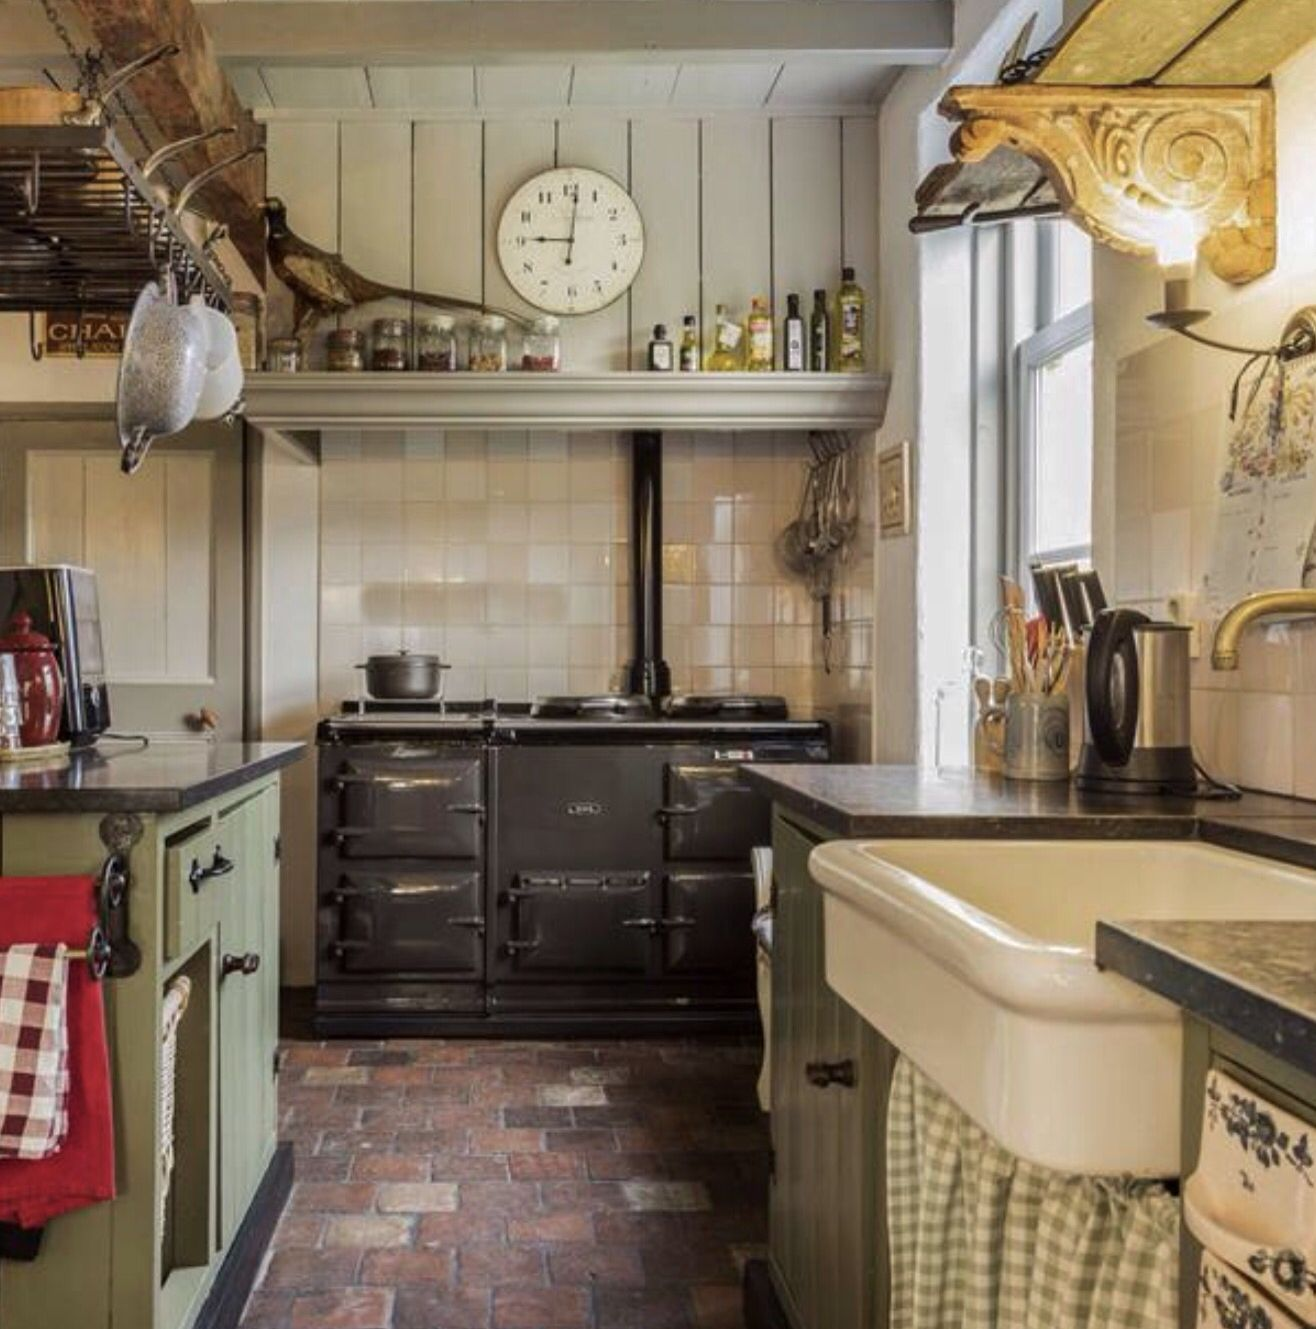 Brick Flooring Kitchen: Love!...brick Floor, The Stove., The Sink. Only Thing No